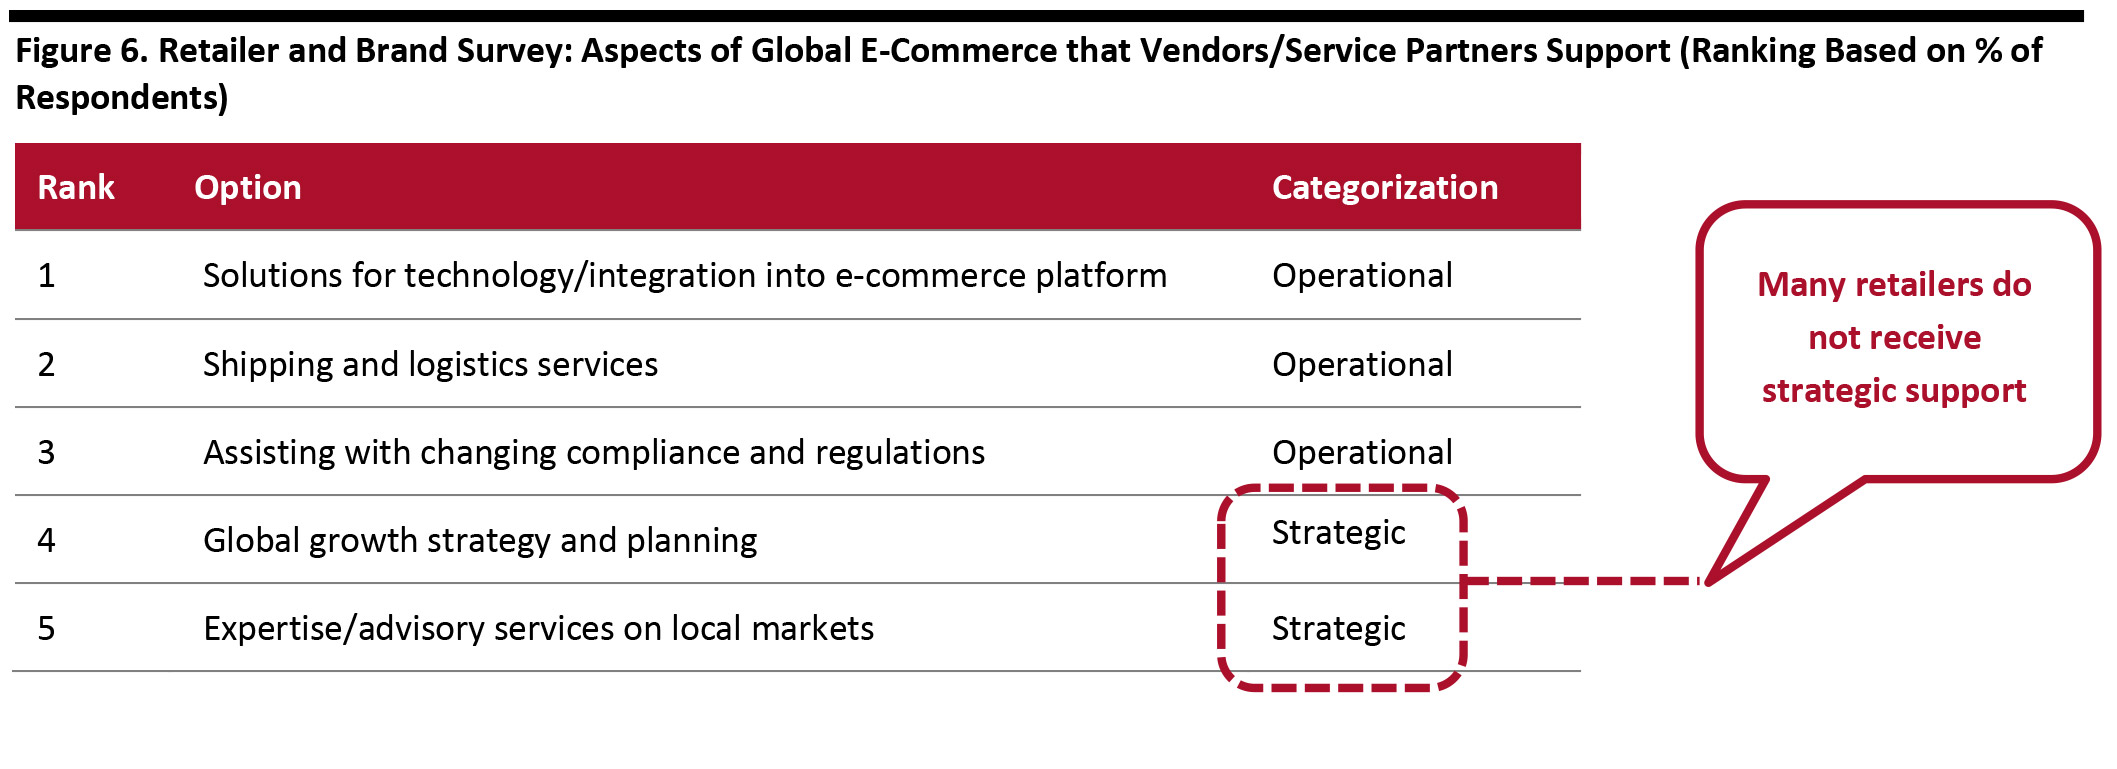 Figure 6. Retailer and Brand Survey: Aspects of Global E-Commerce that Vendors/Service Partners Support (Ranking Based on % of Respondents)